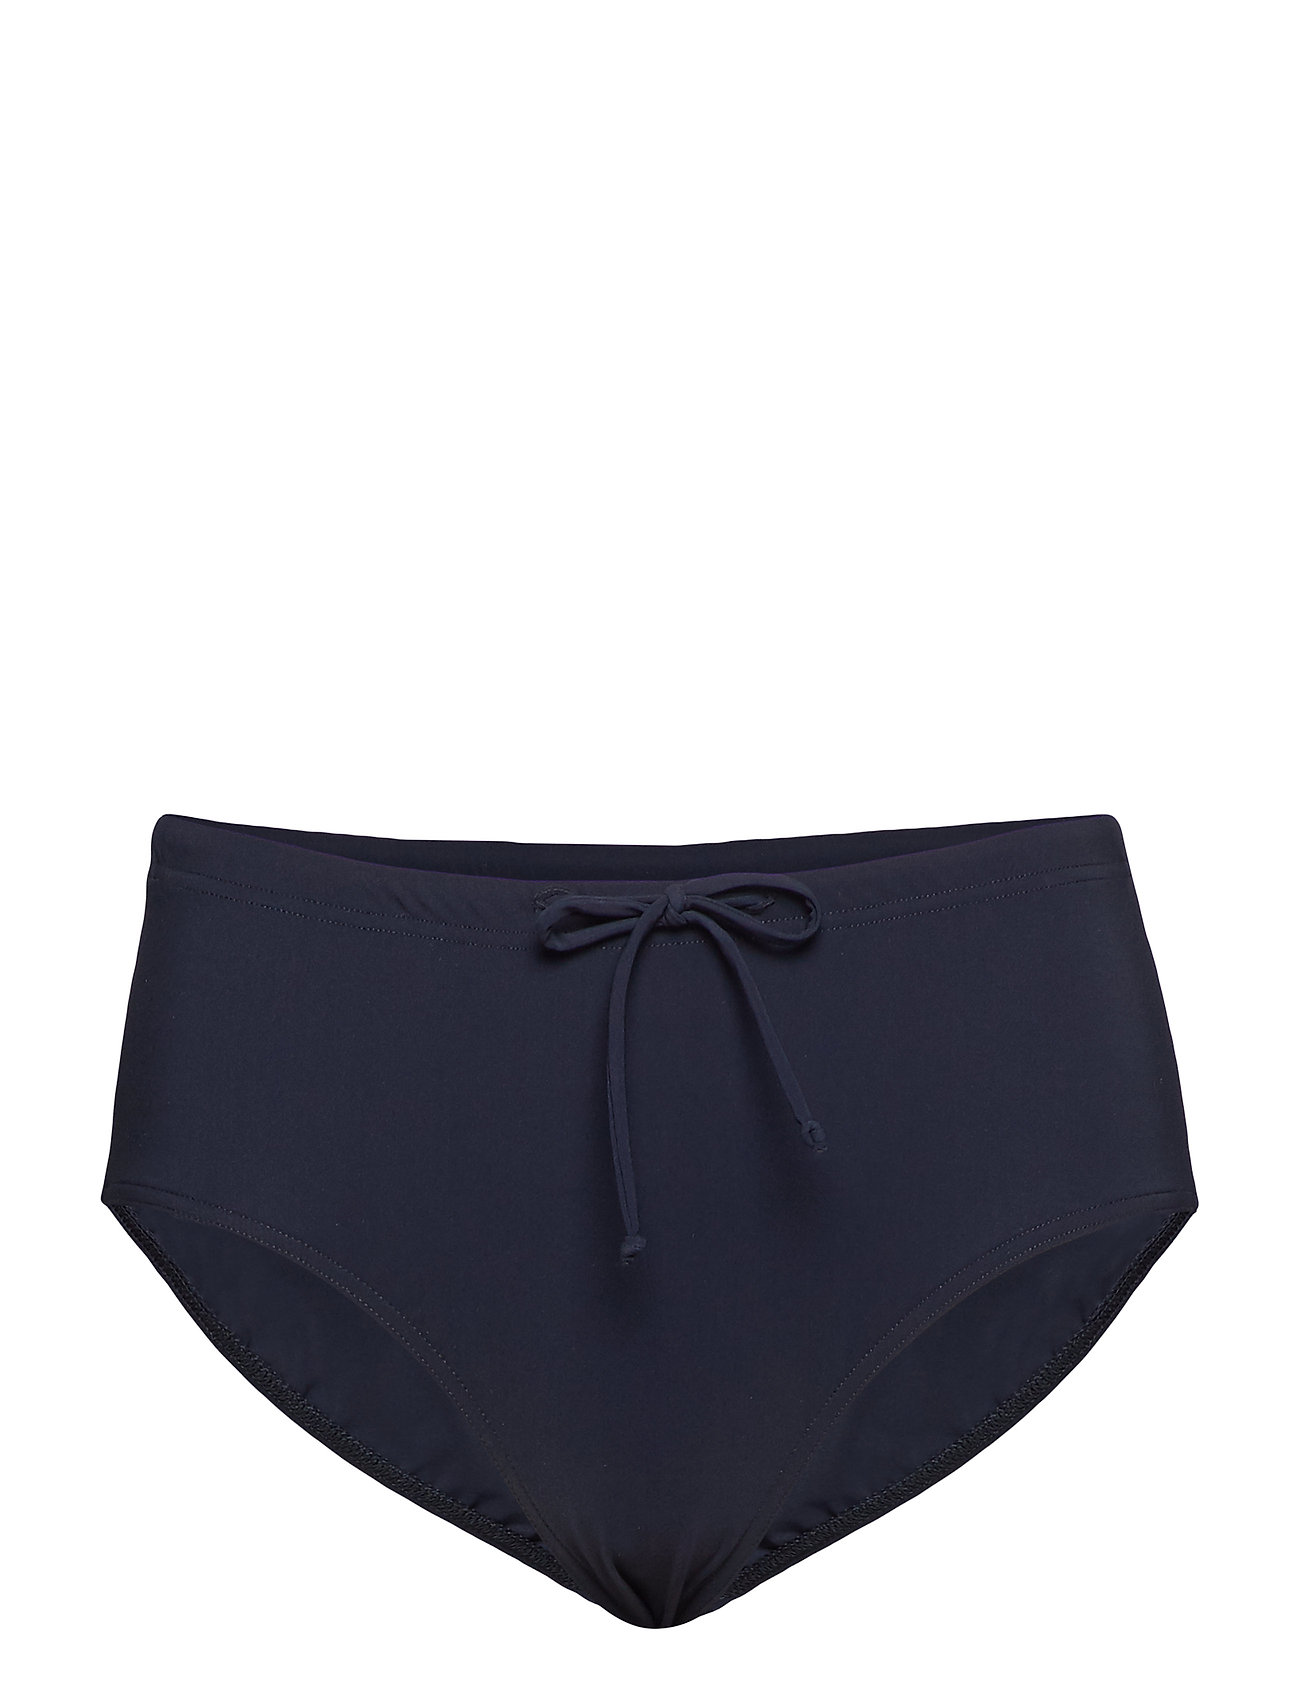 Filippa K Soft Sport High Waist Bikini Bottom